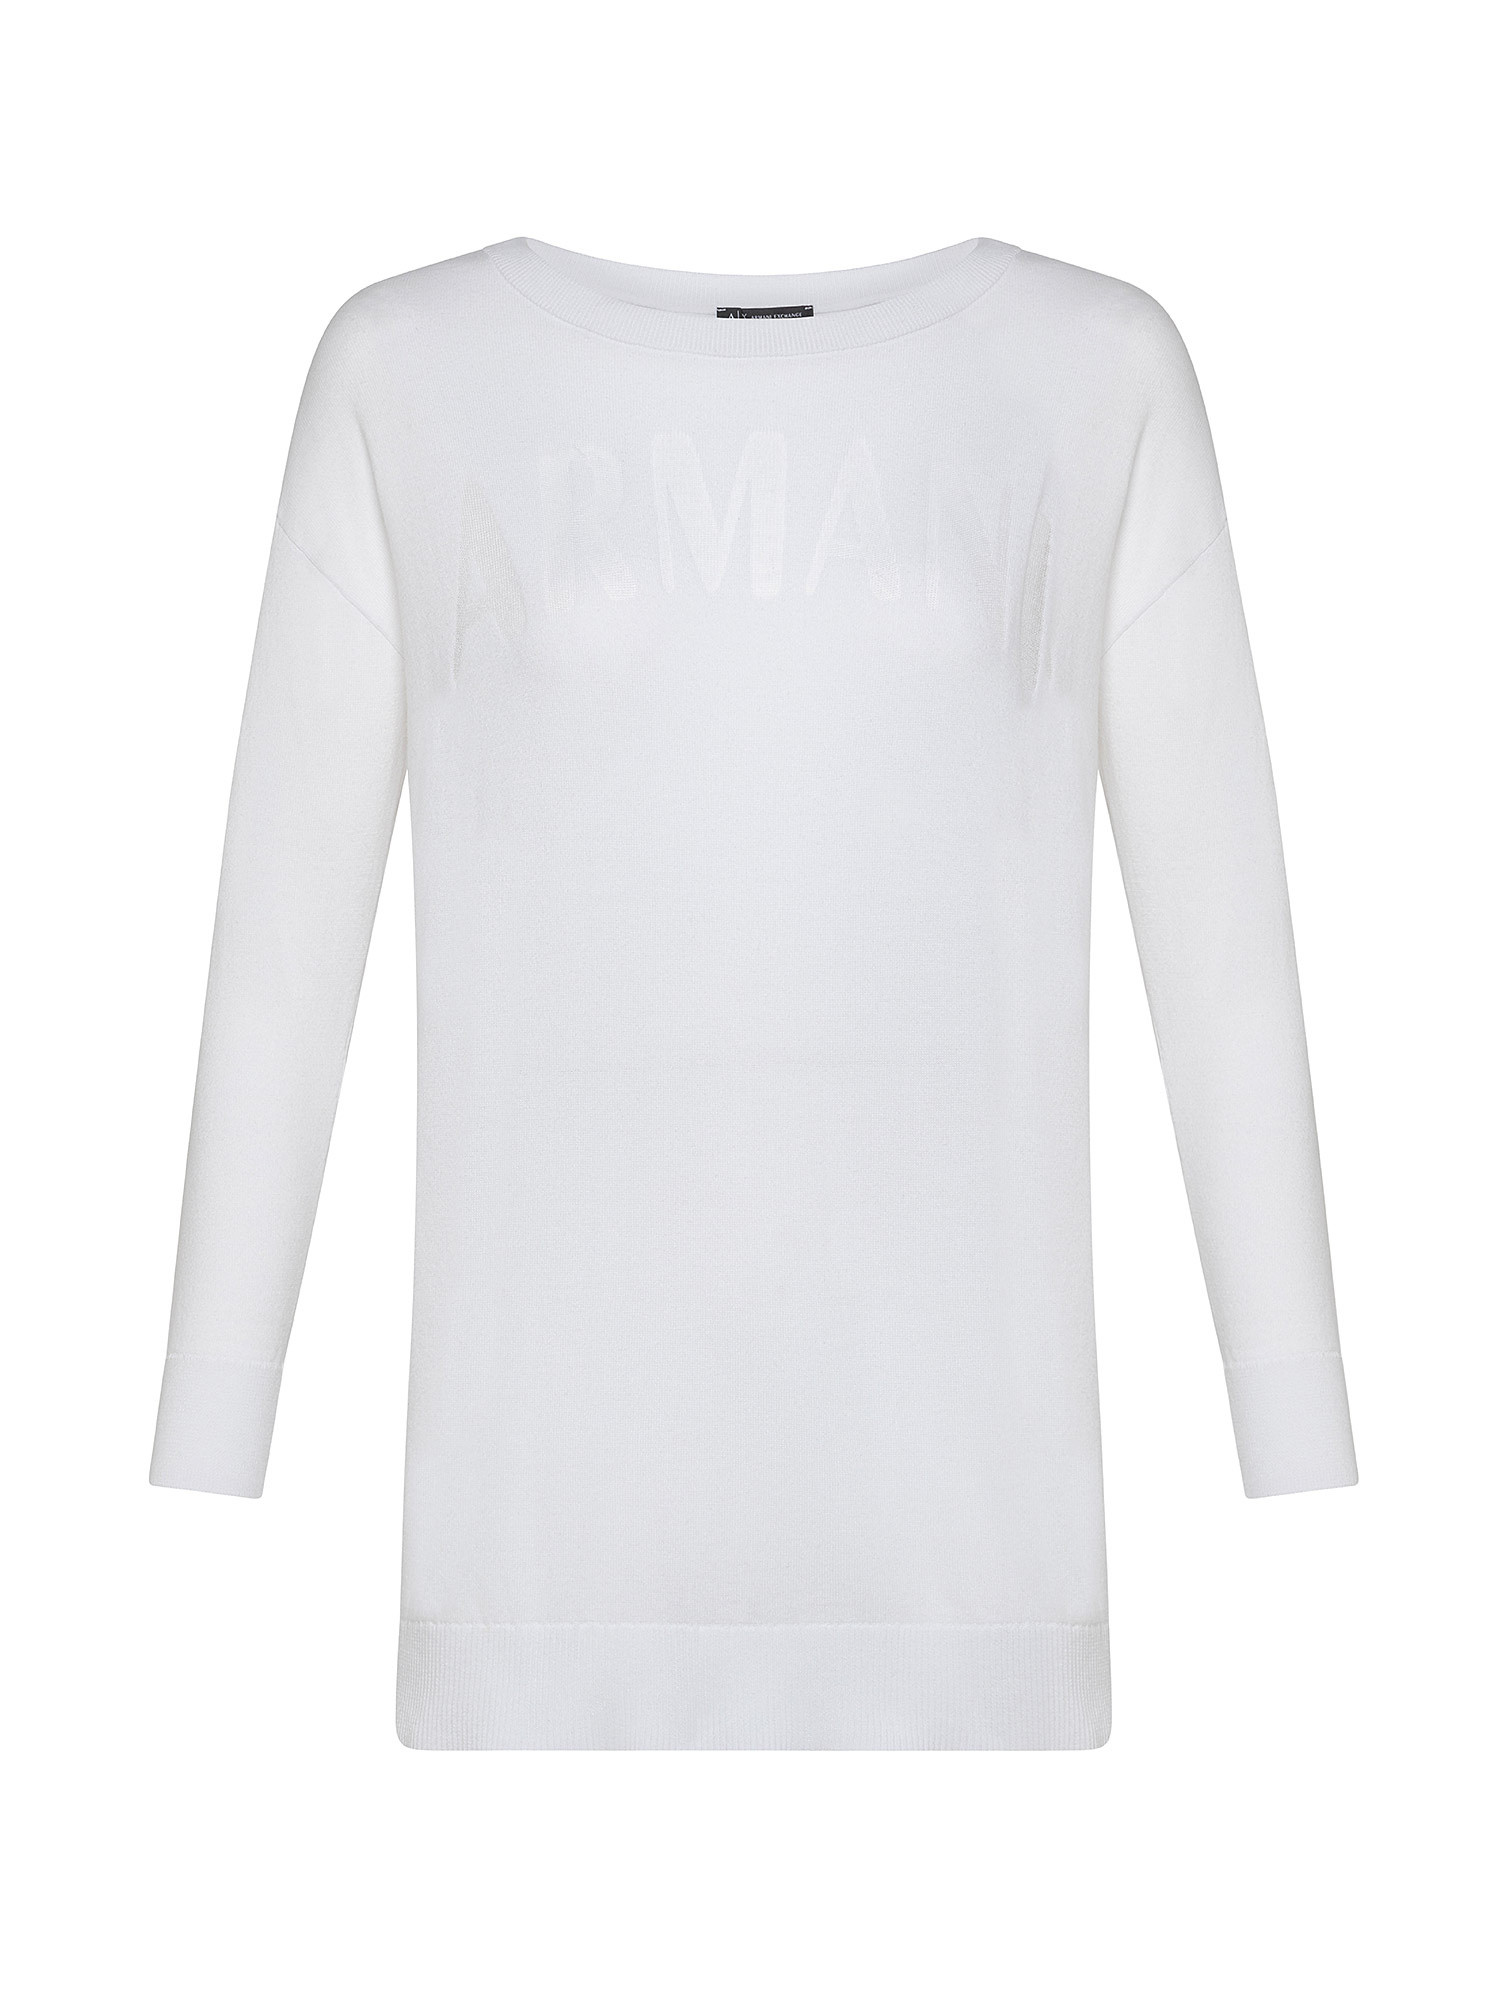 Maglione con logo, Bianco, large image number 0